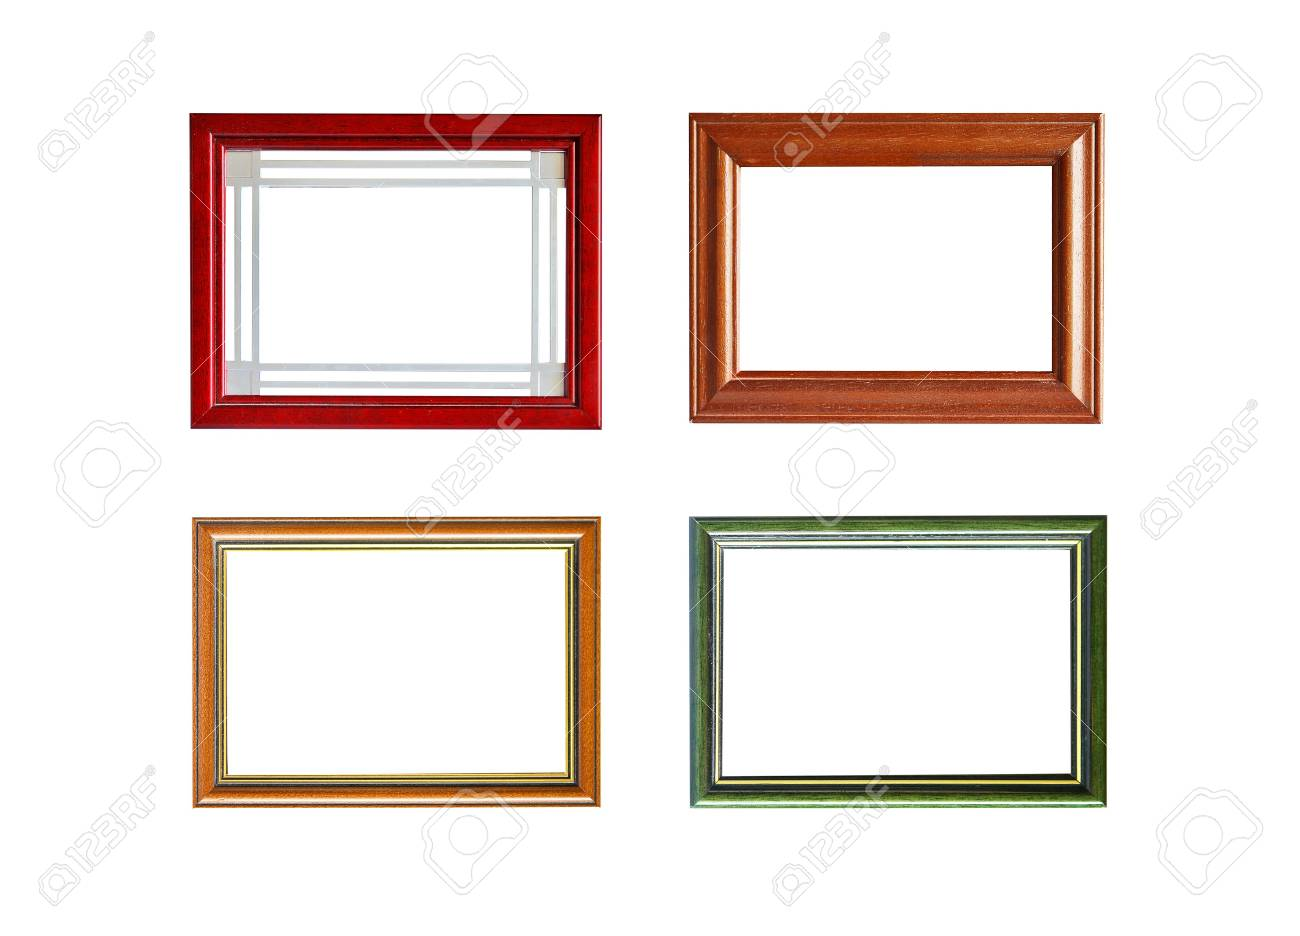 Four Colorful Wooden Picture Frames Isolated On White Background ...